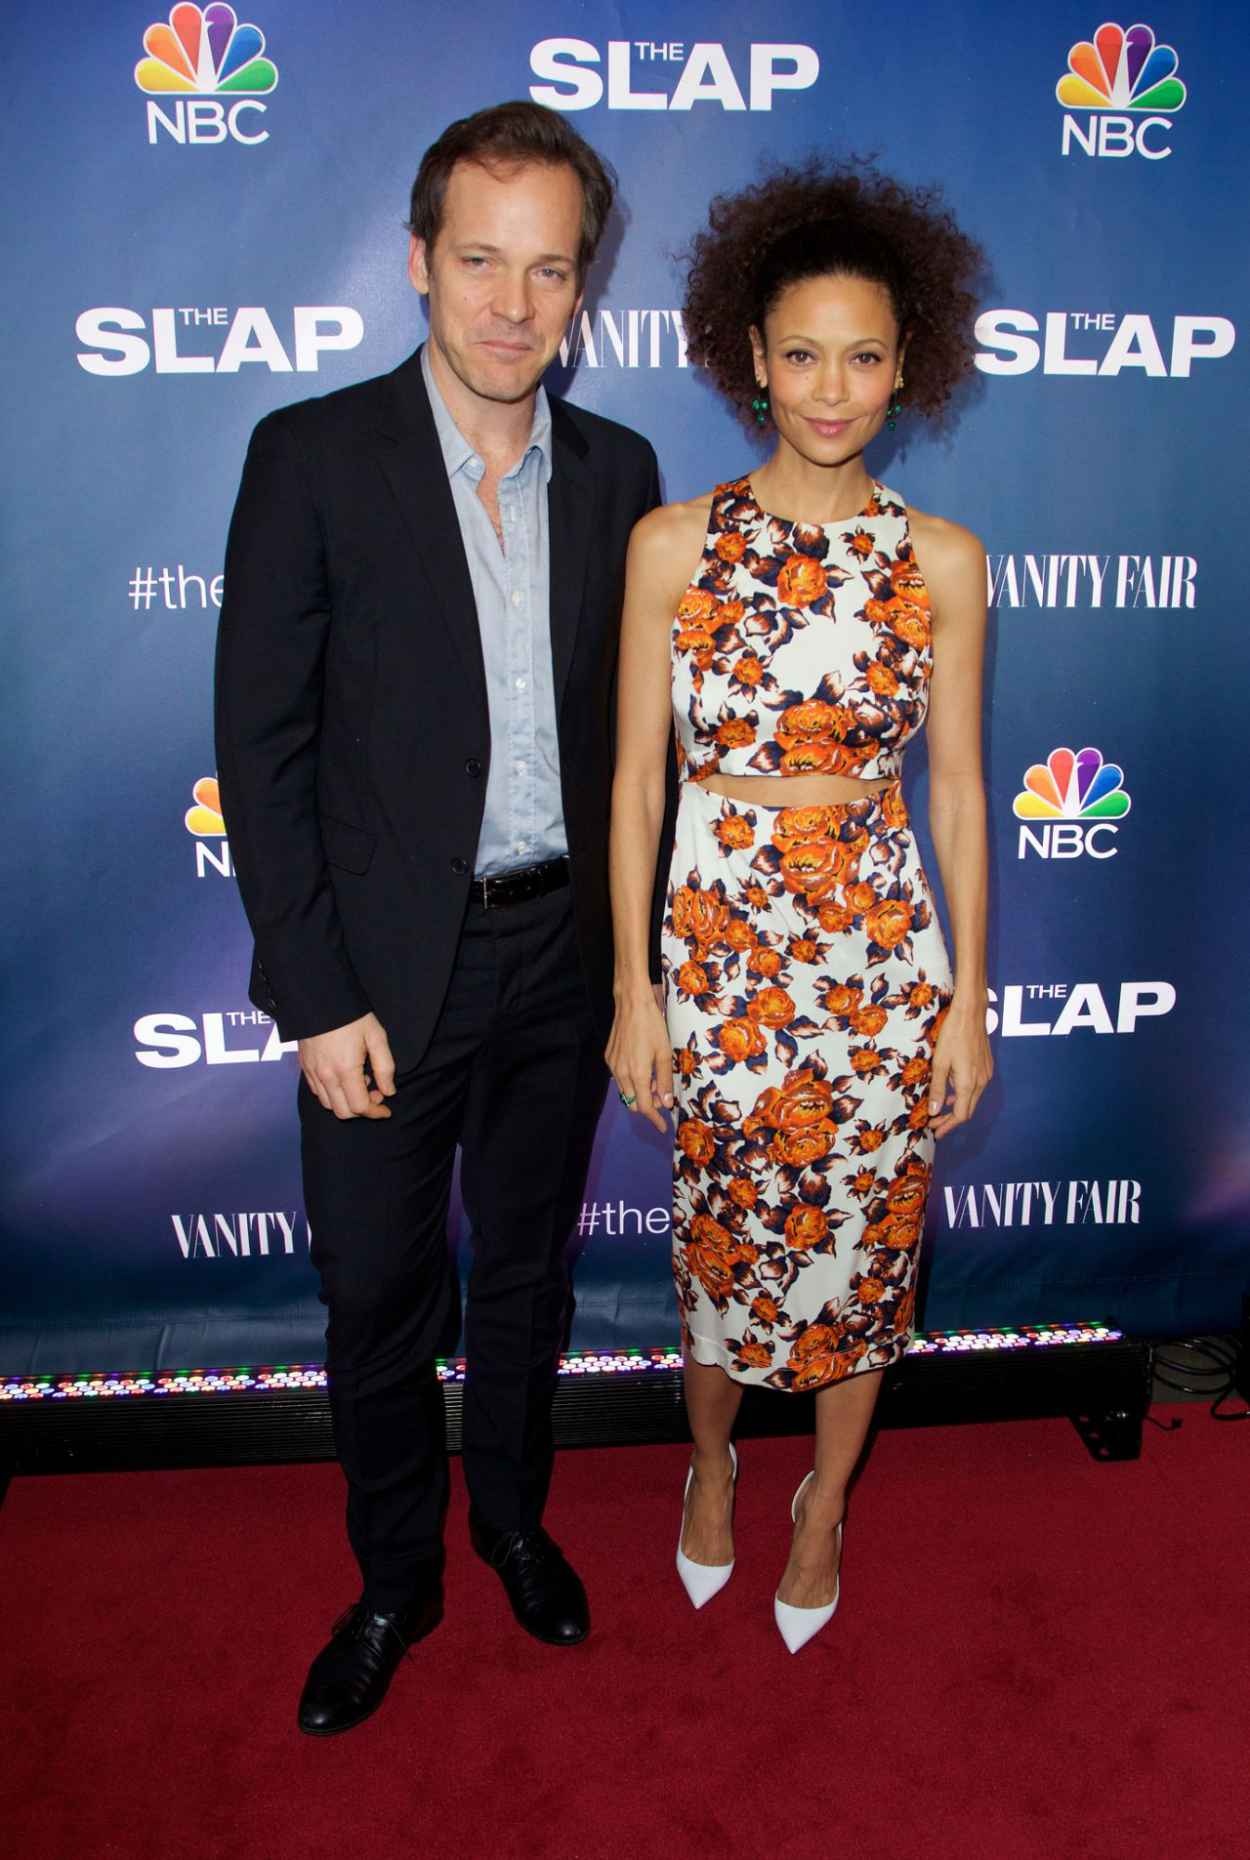 Thandie Newton - The Slap Premiere in New York-2